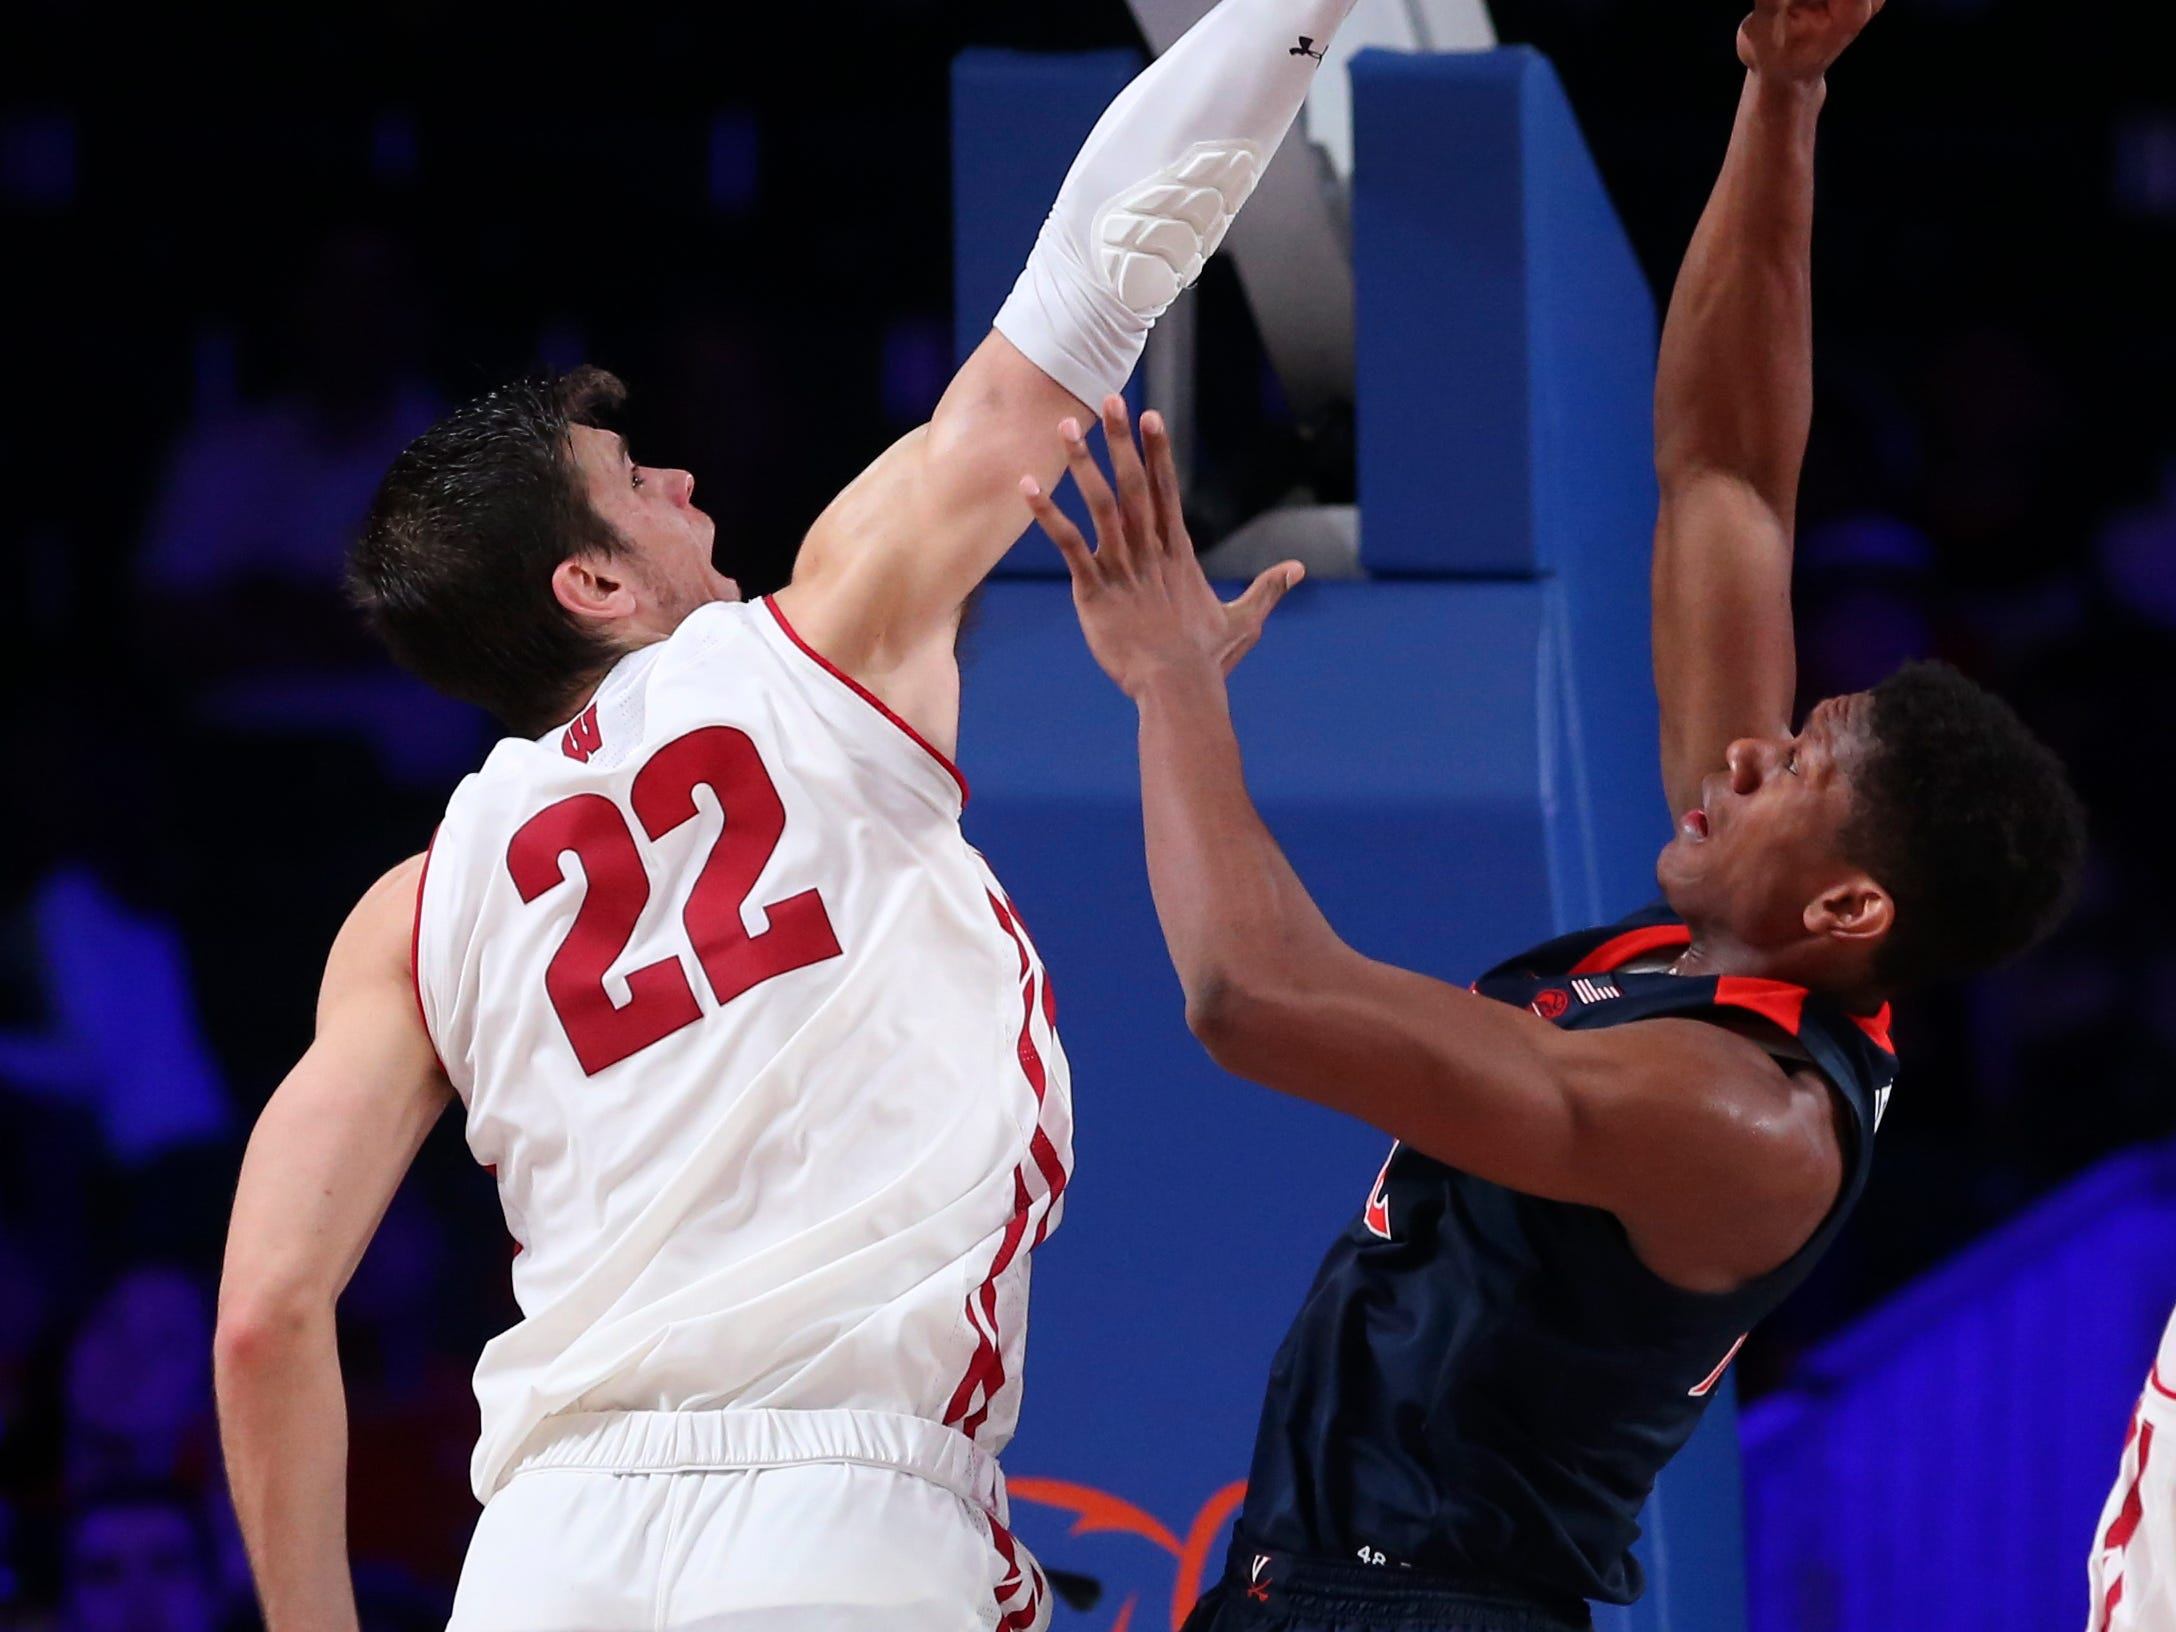 Badgers forward Ethan Happ defends the shot of Virginia Cavaliers guard De'Andre Hunter.